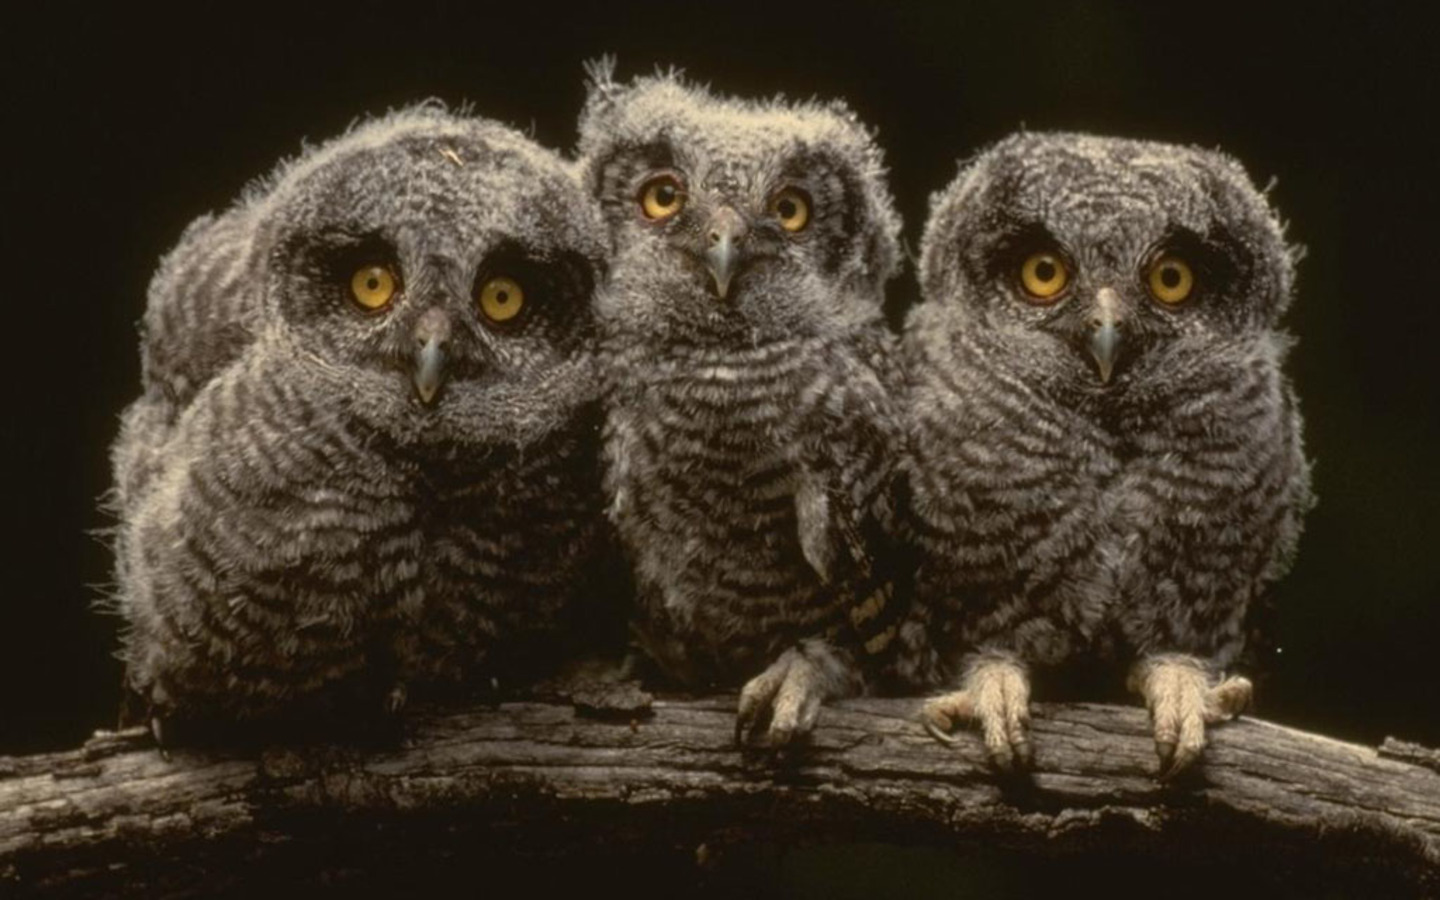 Young Owls Wallpaper